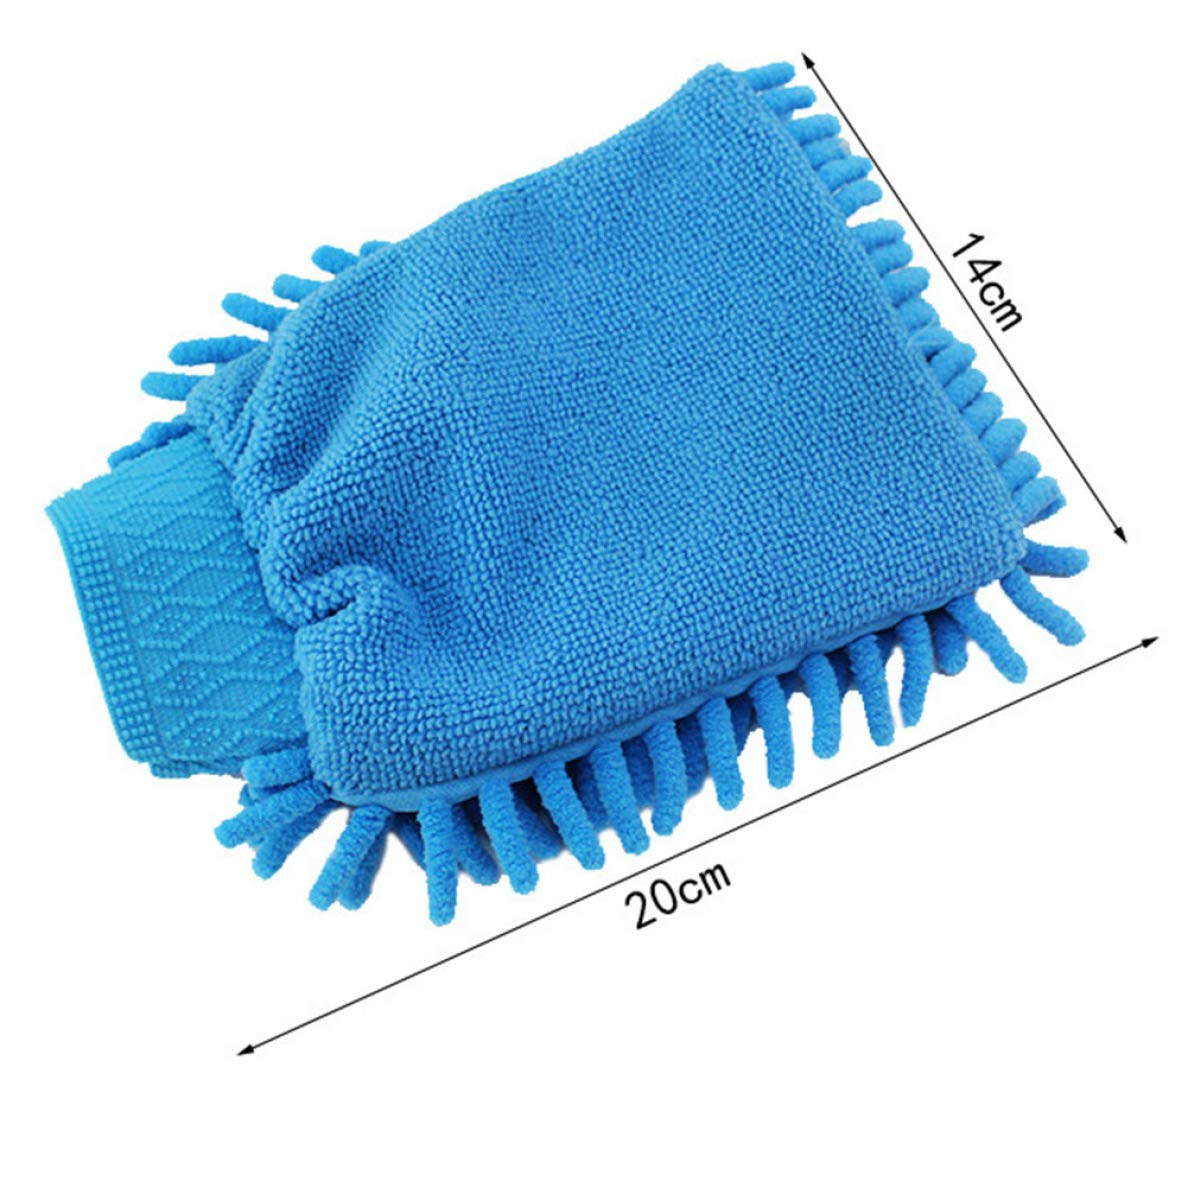 None N//A Diriangzi Cleaner,Towels,carwashingcloth,carsupplie,carsaccessorie,Accessories,Cleaning Tools,carcleaningtool,carwashing,washingglove